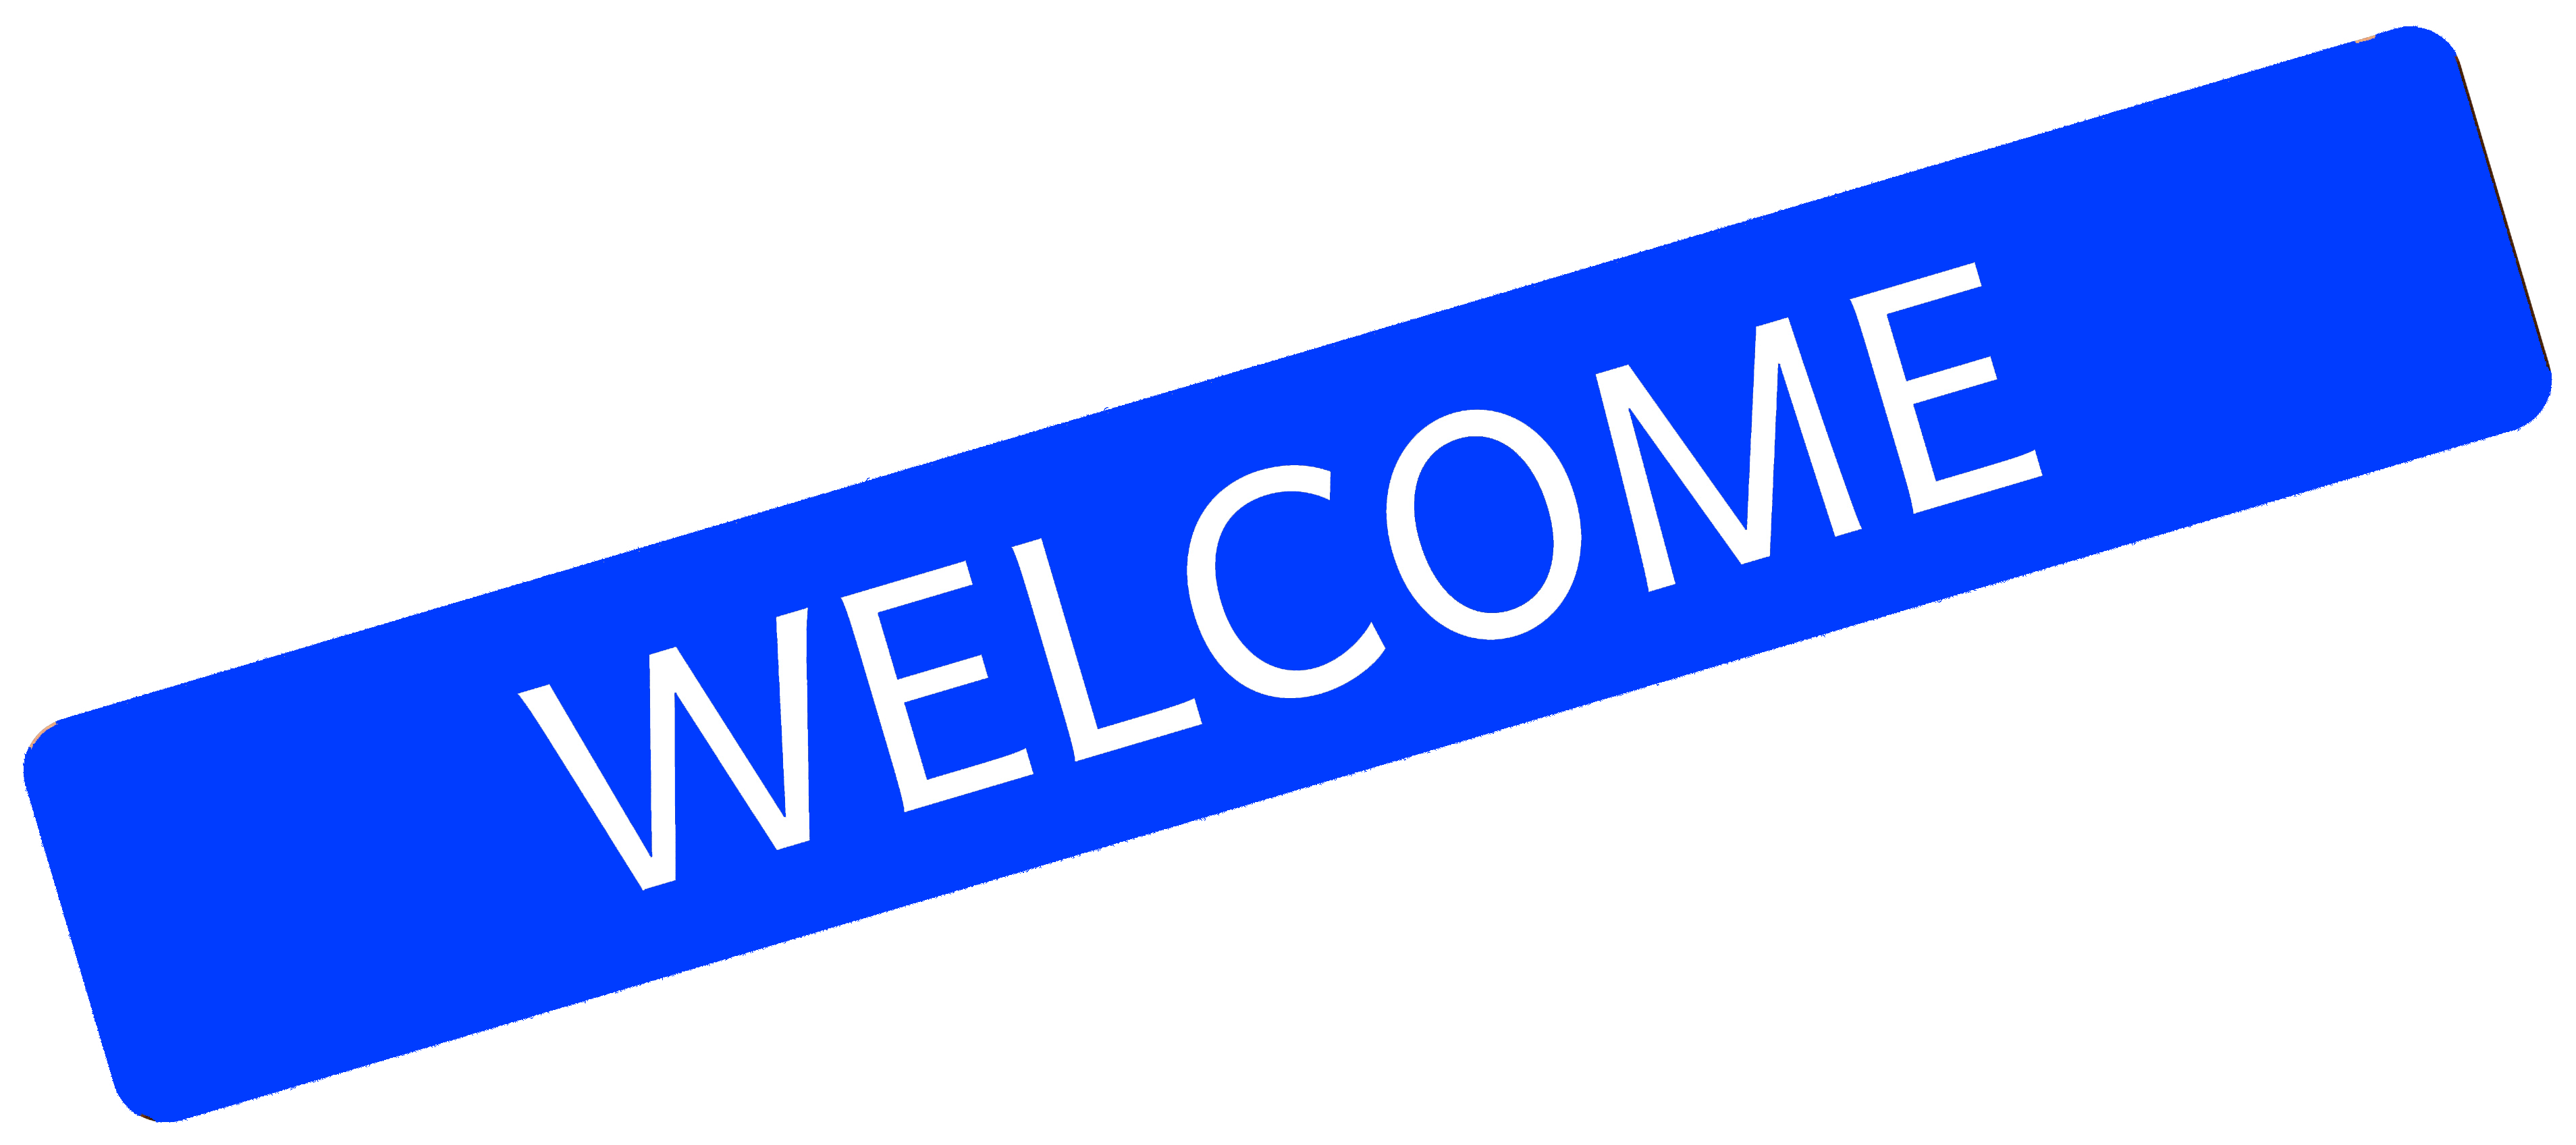 Blue welcome sign icon